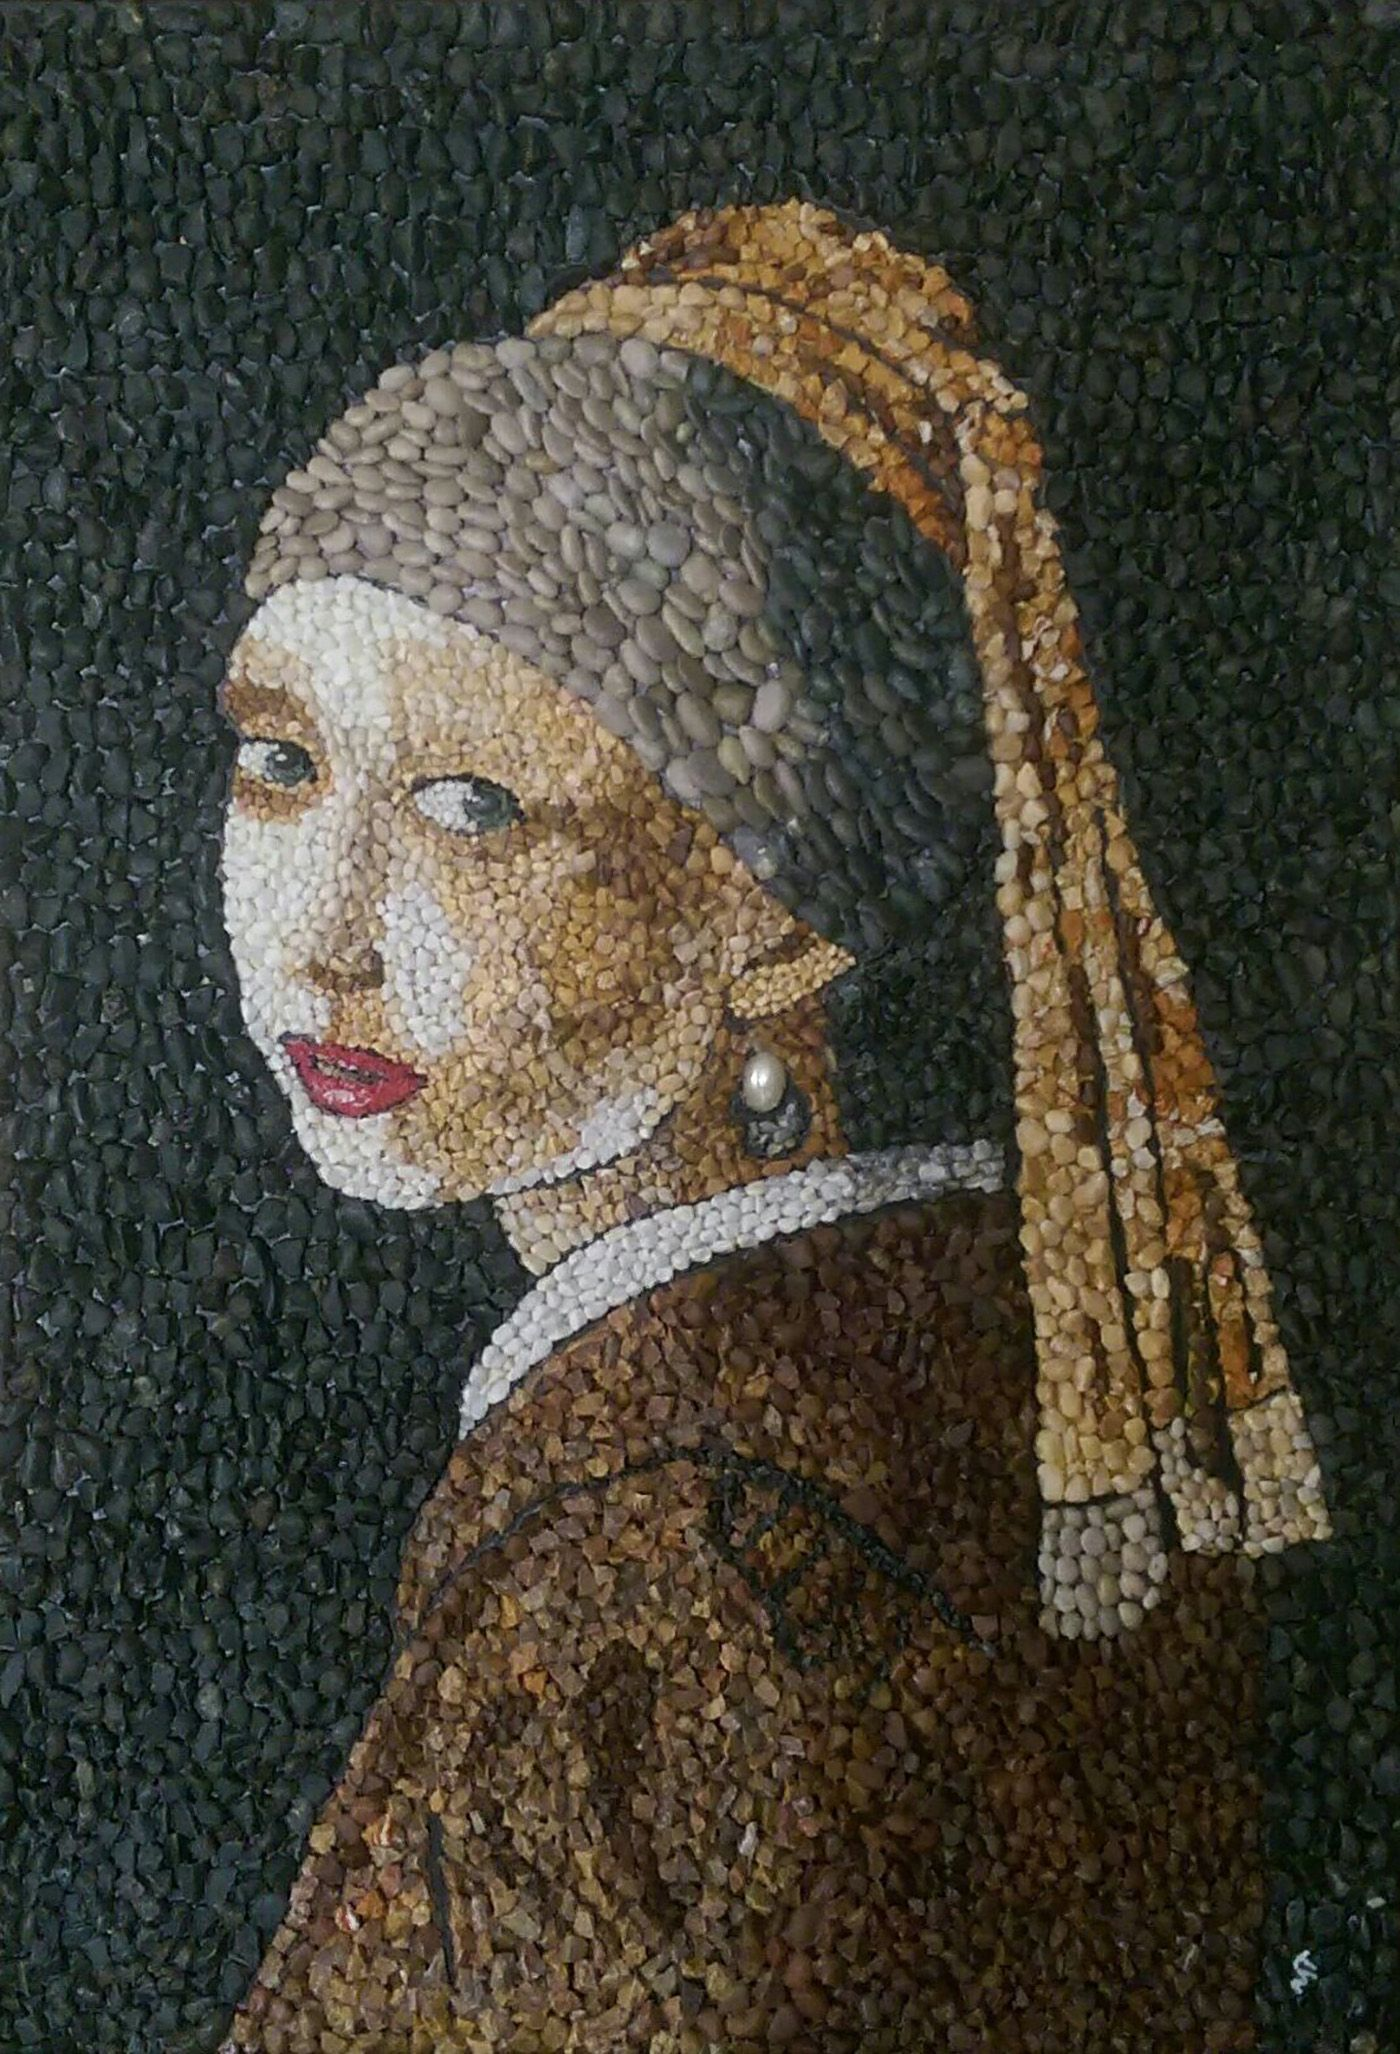 Inci Kupeli Kiz Girl With The Pearl Earring By Munteha Tuga